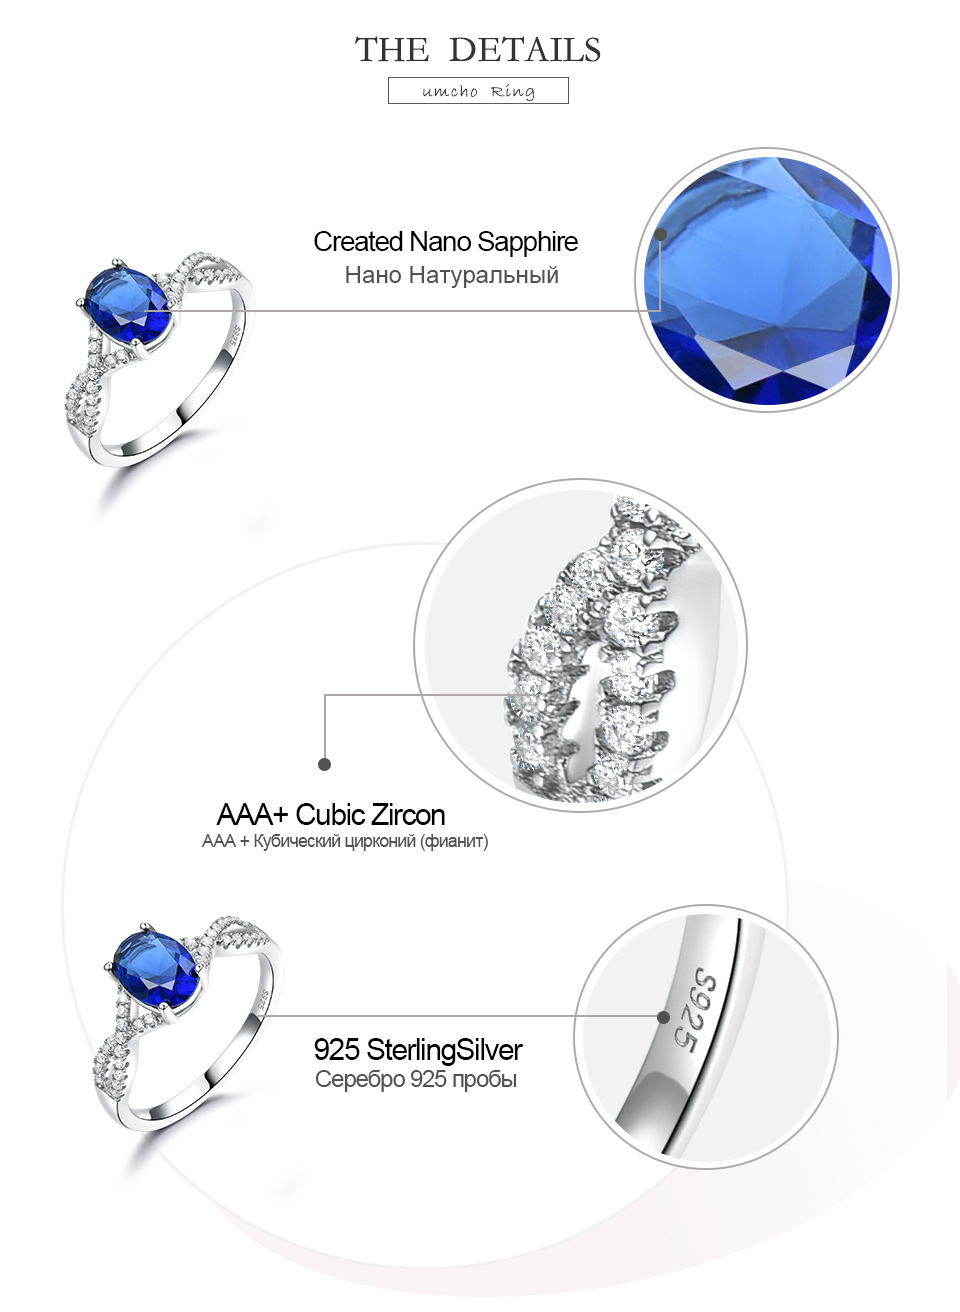 HonyySapphire 925 sterling silver rings for women RUJ099S-1-pc (6)